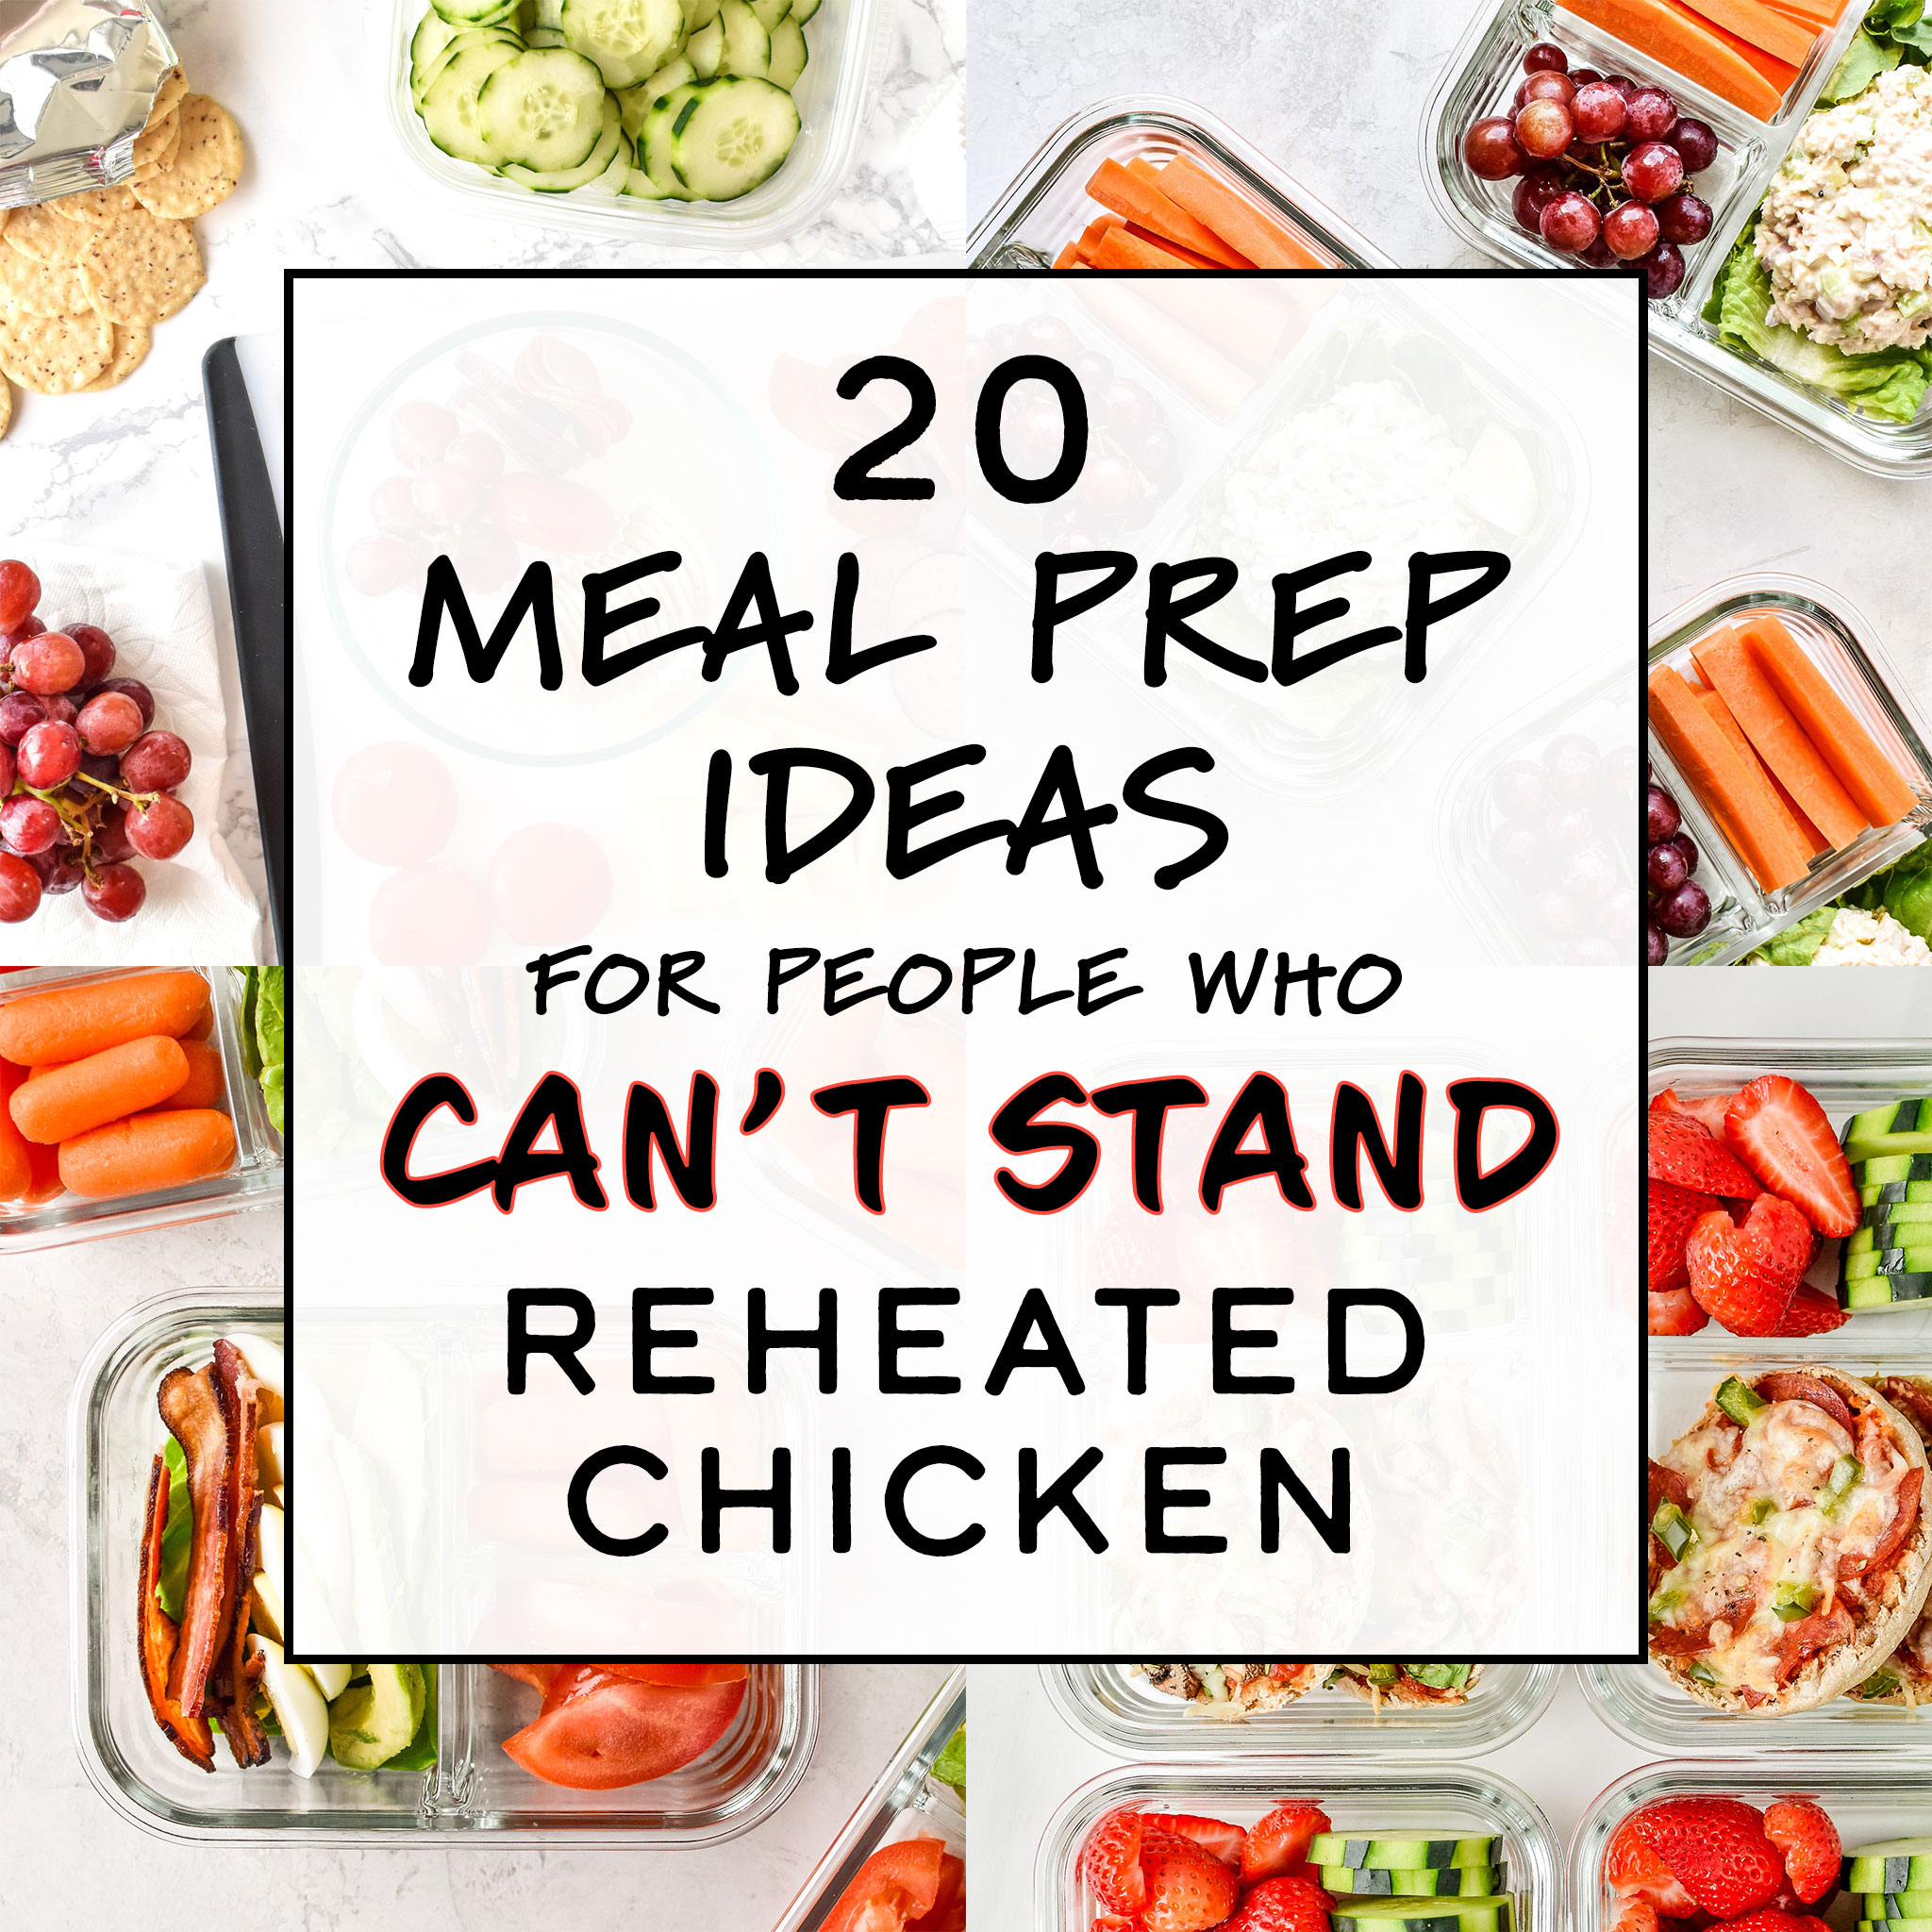 Cover photo collage for the post 20 Meal Prep Ideas for People Who Can't Stand Reheated Chicken